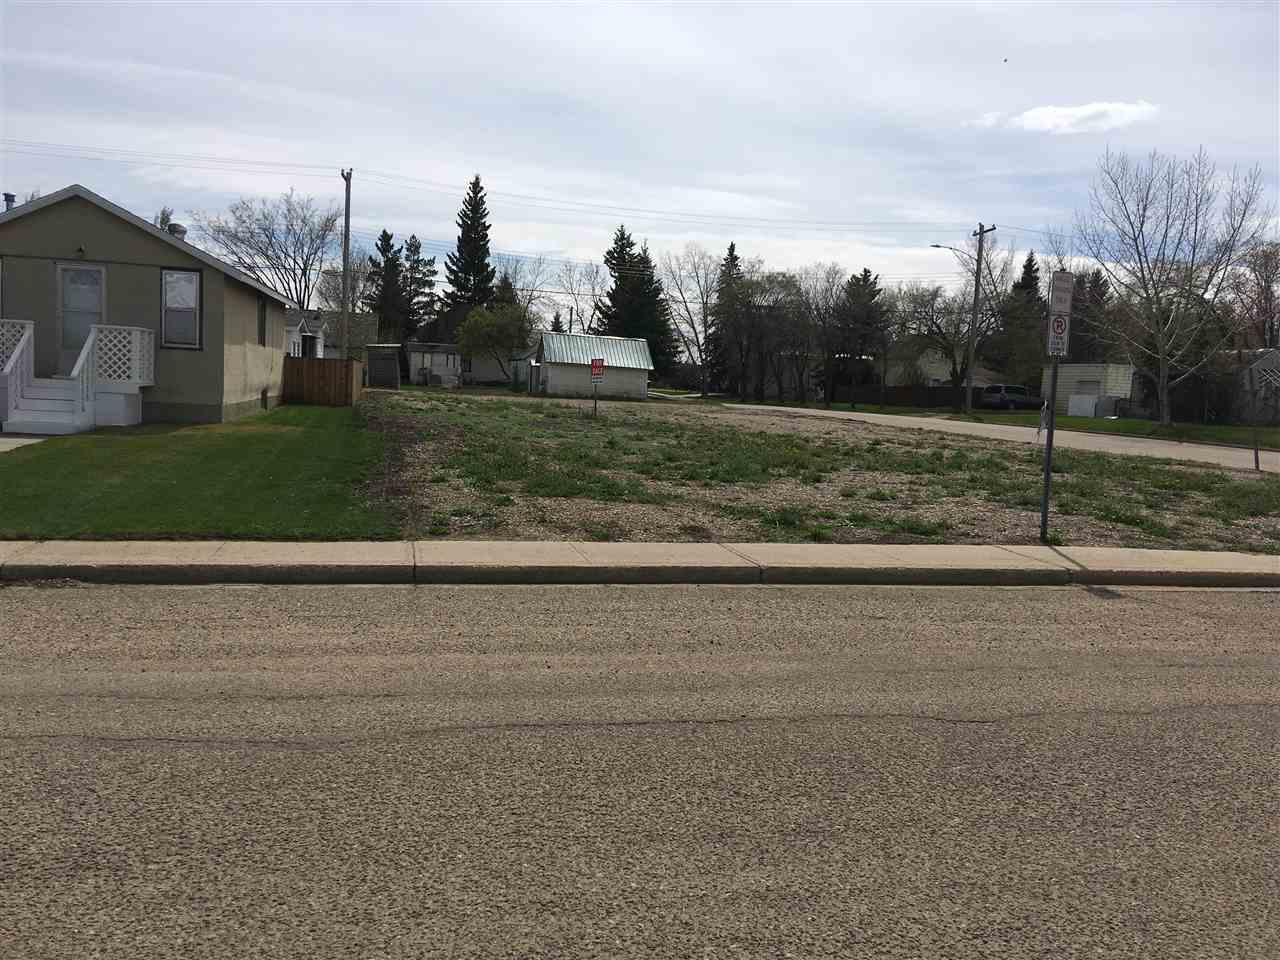 Large 50'X140' Vacant lot across from new clinic, close to shopping, school and hospital. Area is both residential and commercial. Lot is zoned residential but has the potential to be rezoned to multi-use or commercial. Build a home close to amenities or a business on this highly visible corner lot.